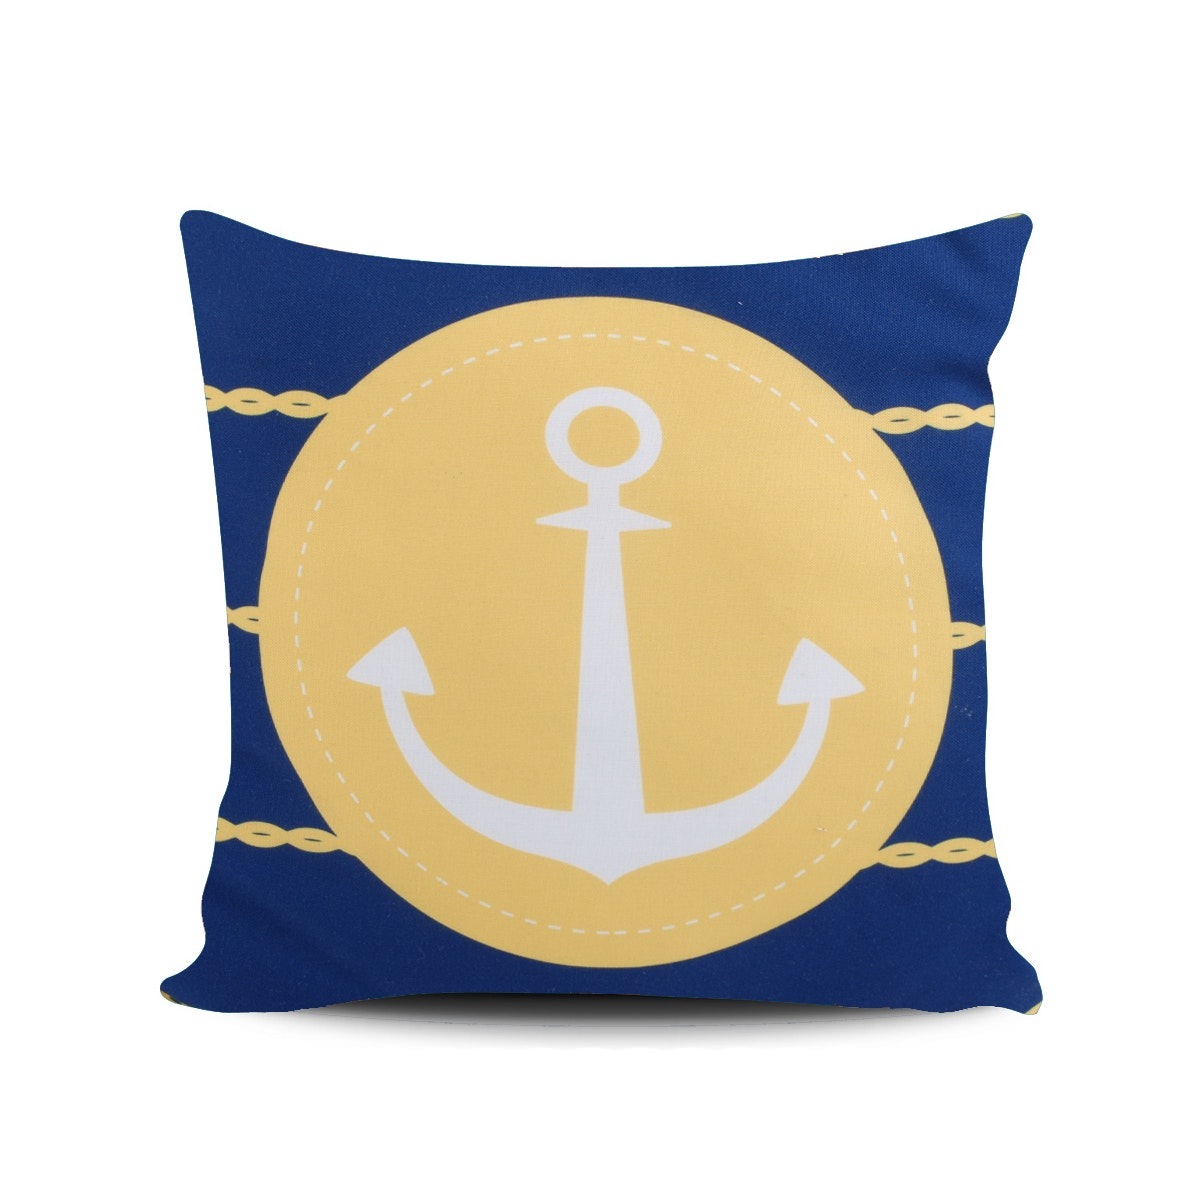 Myka_kids Navy Anchor Cushion Cover 40x40